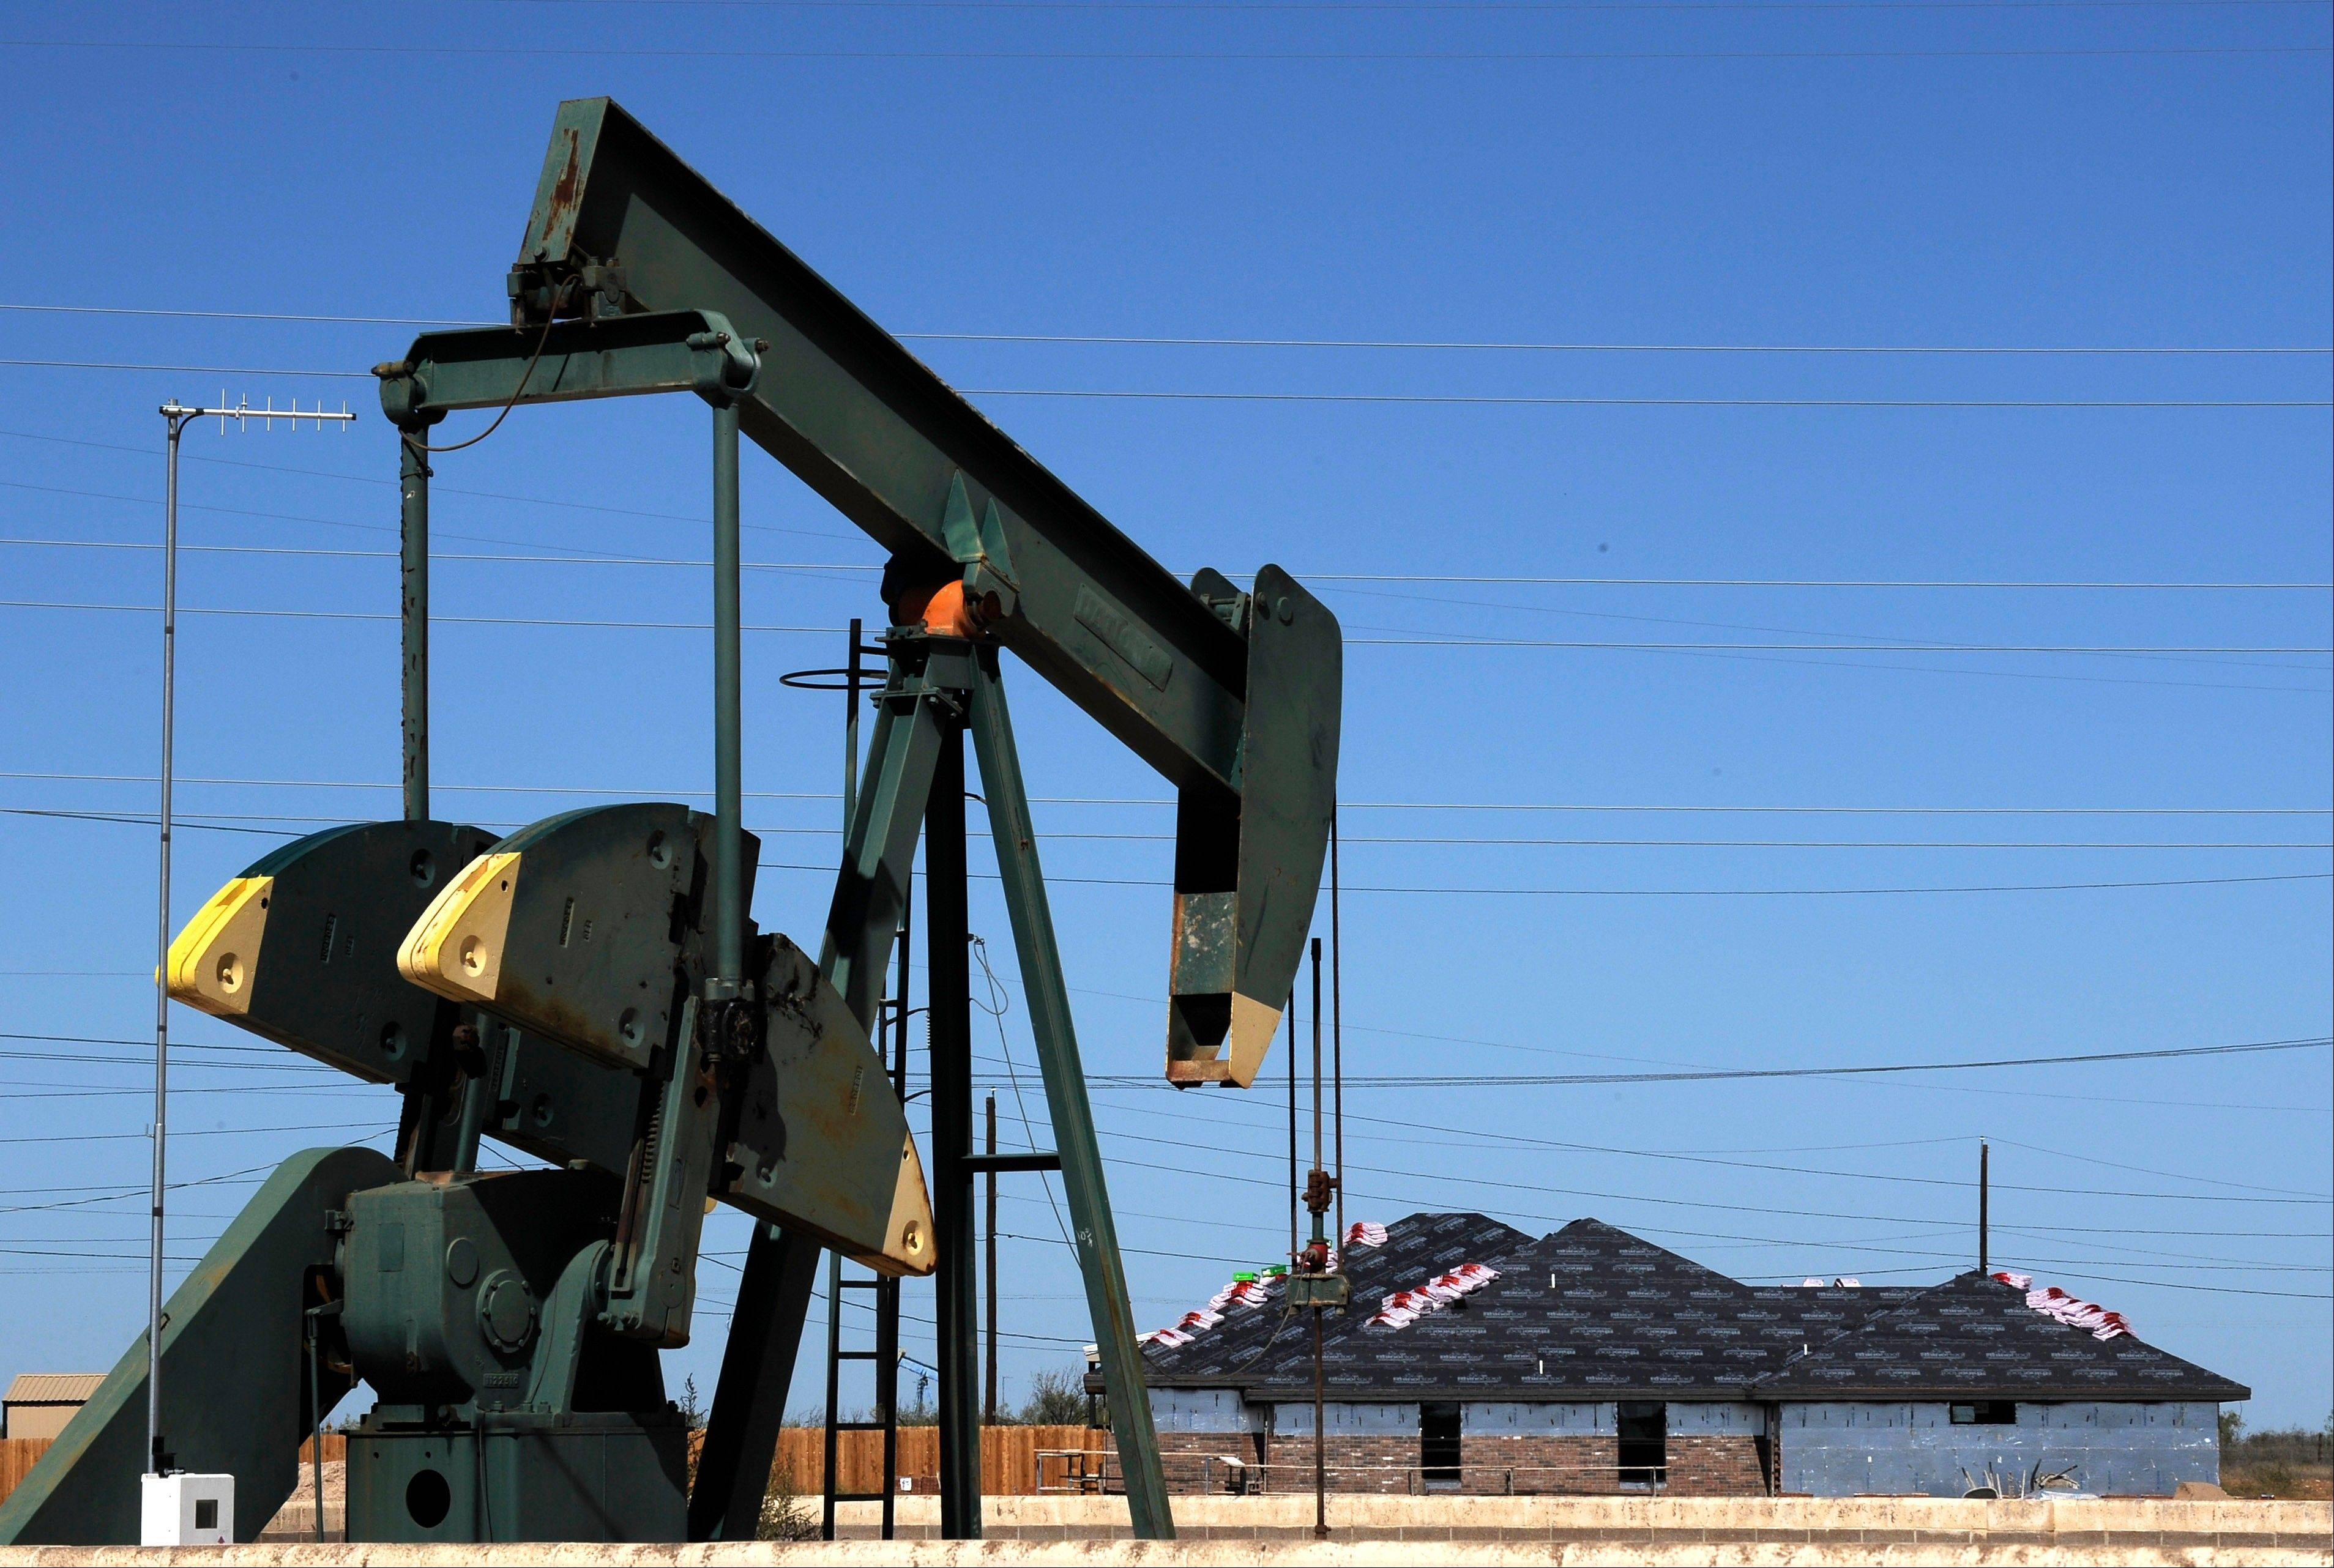 A pump jack works beside the site of new home construction in Midland, Texas. The West Texas town is in the middle of an oil boom with thousands of workers in need of housing.